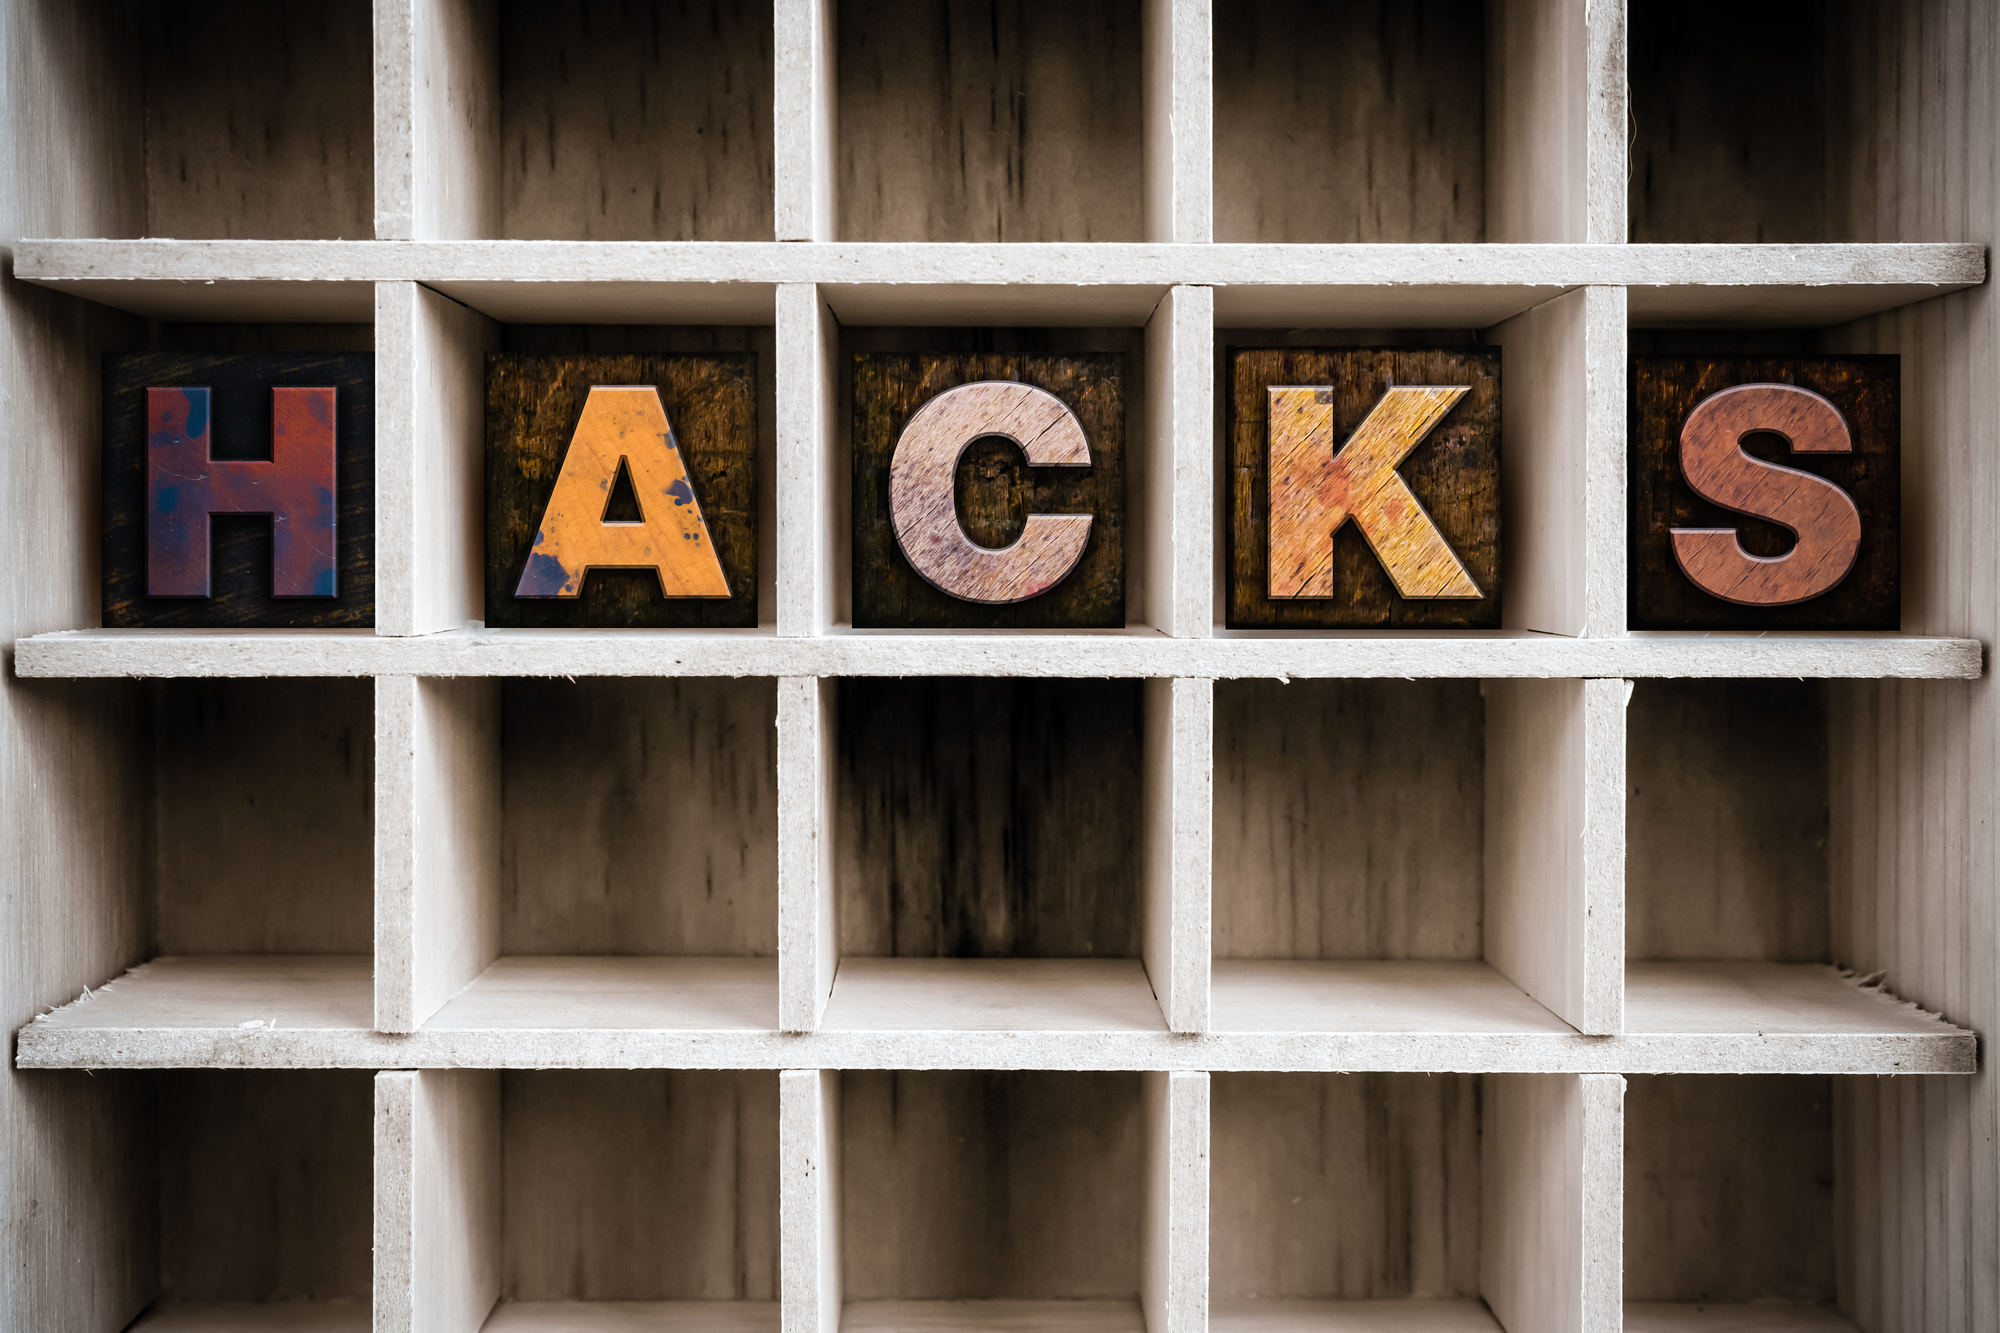 Property Management Hacks In Box Letters